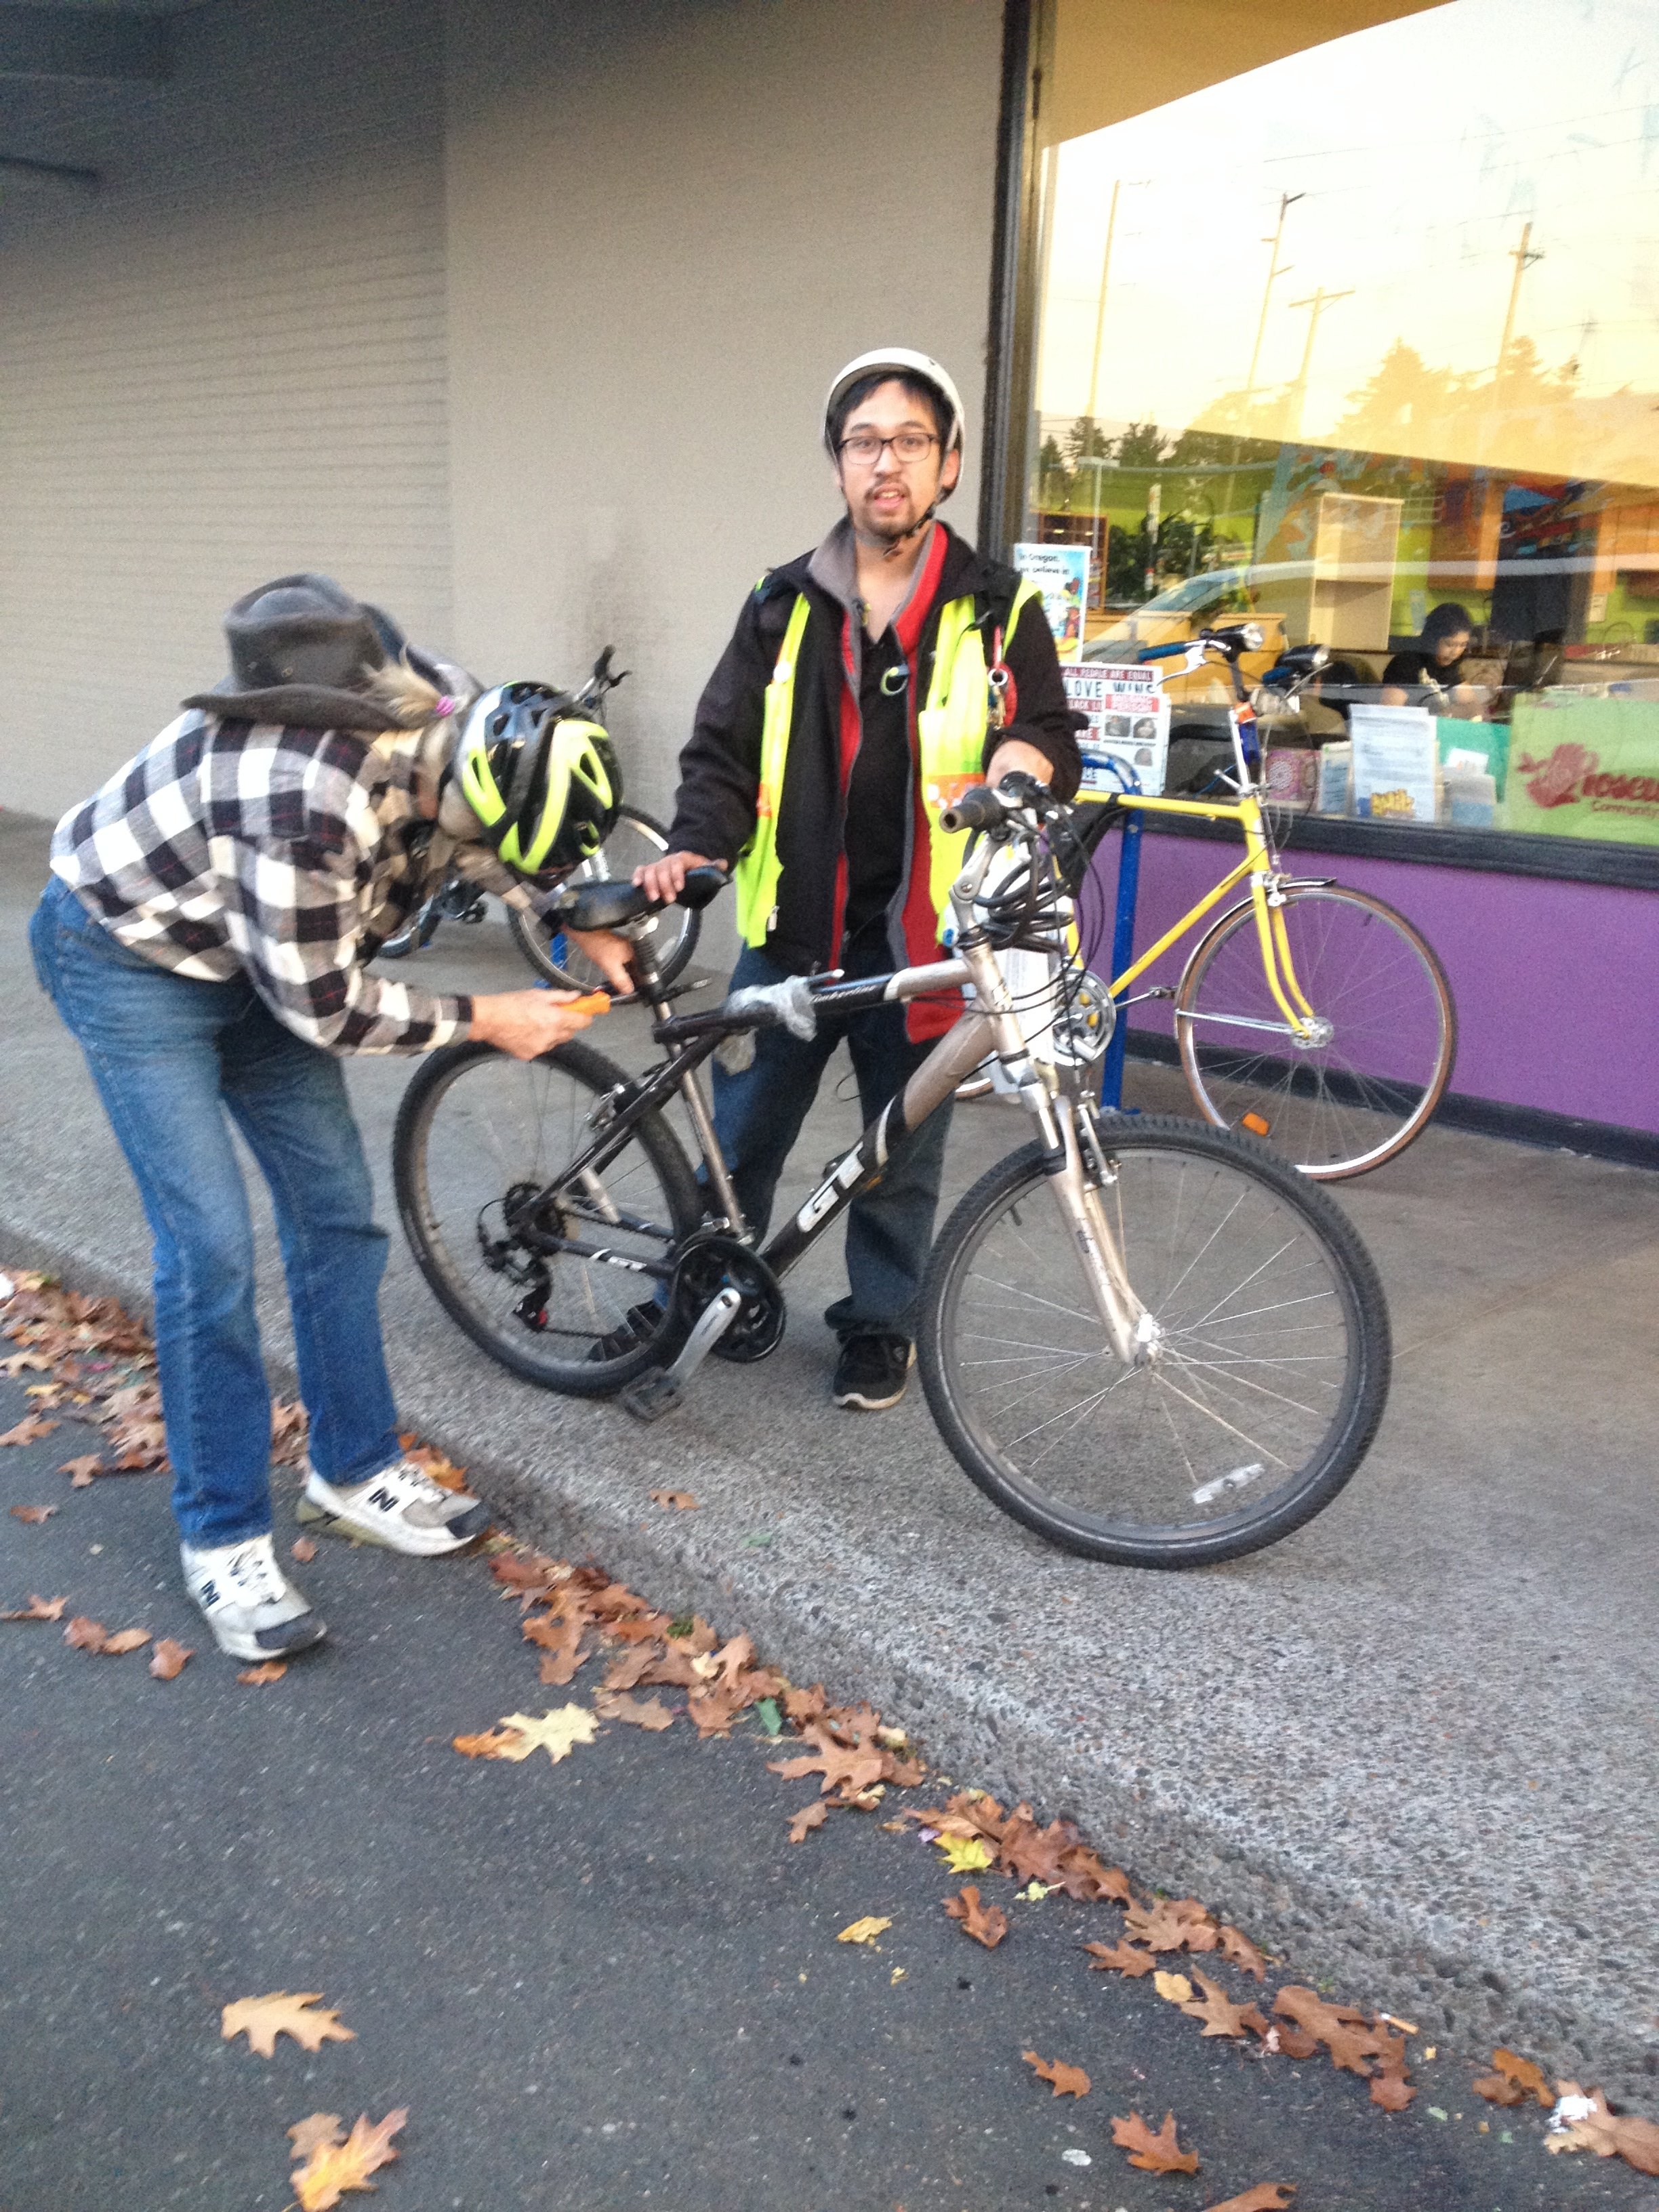 696e9fca557 Blog — Bikes for Humanity PDX